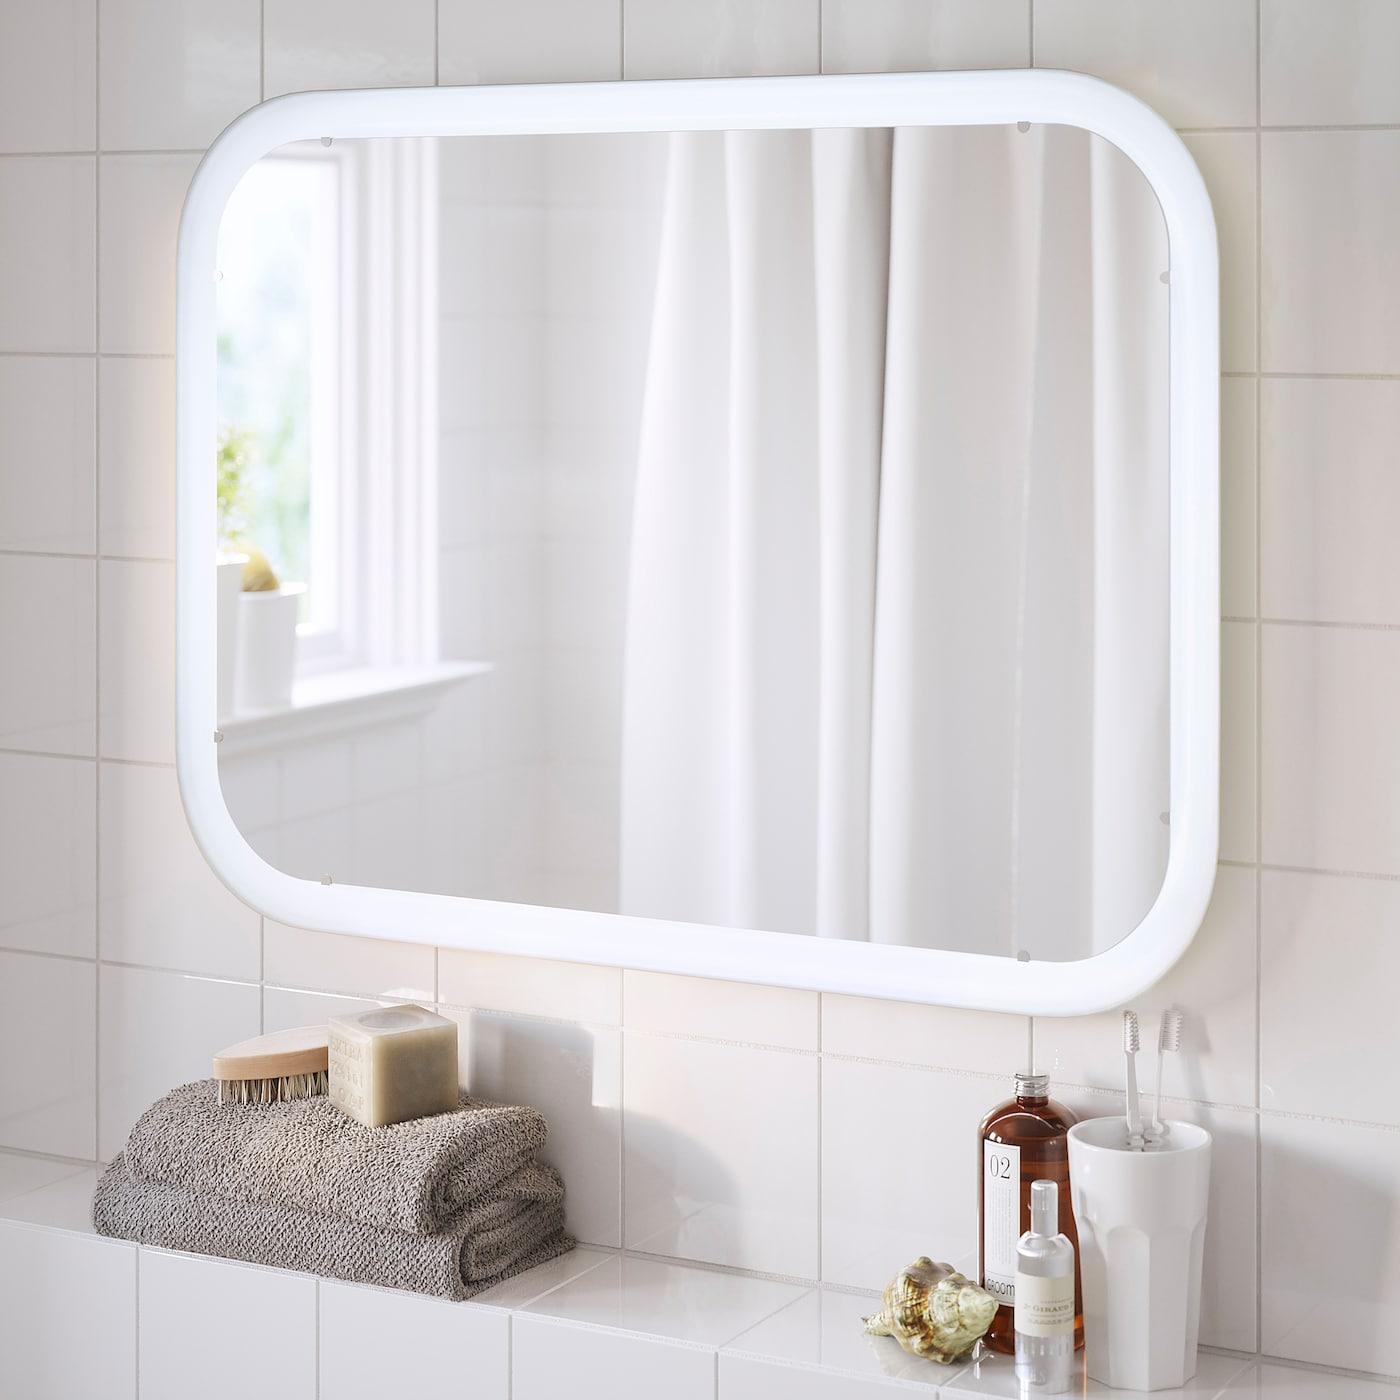 """STORJORM Mirror with built-in light - white 6 6/6x63 6/6 """""""